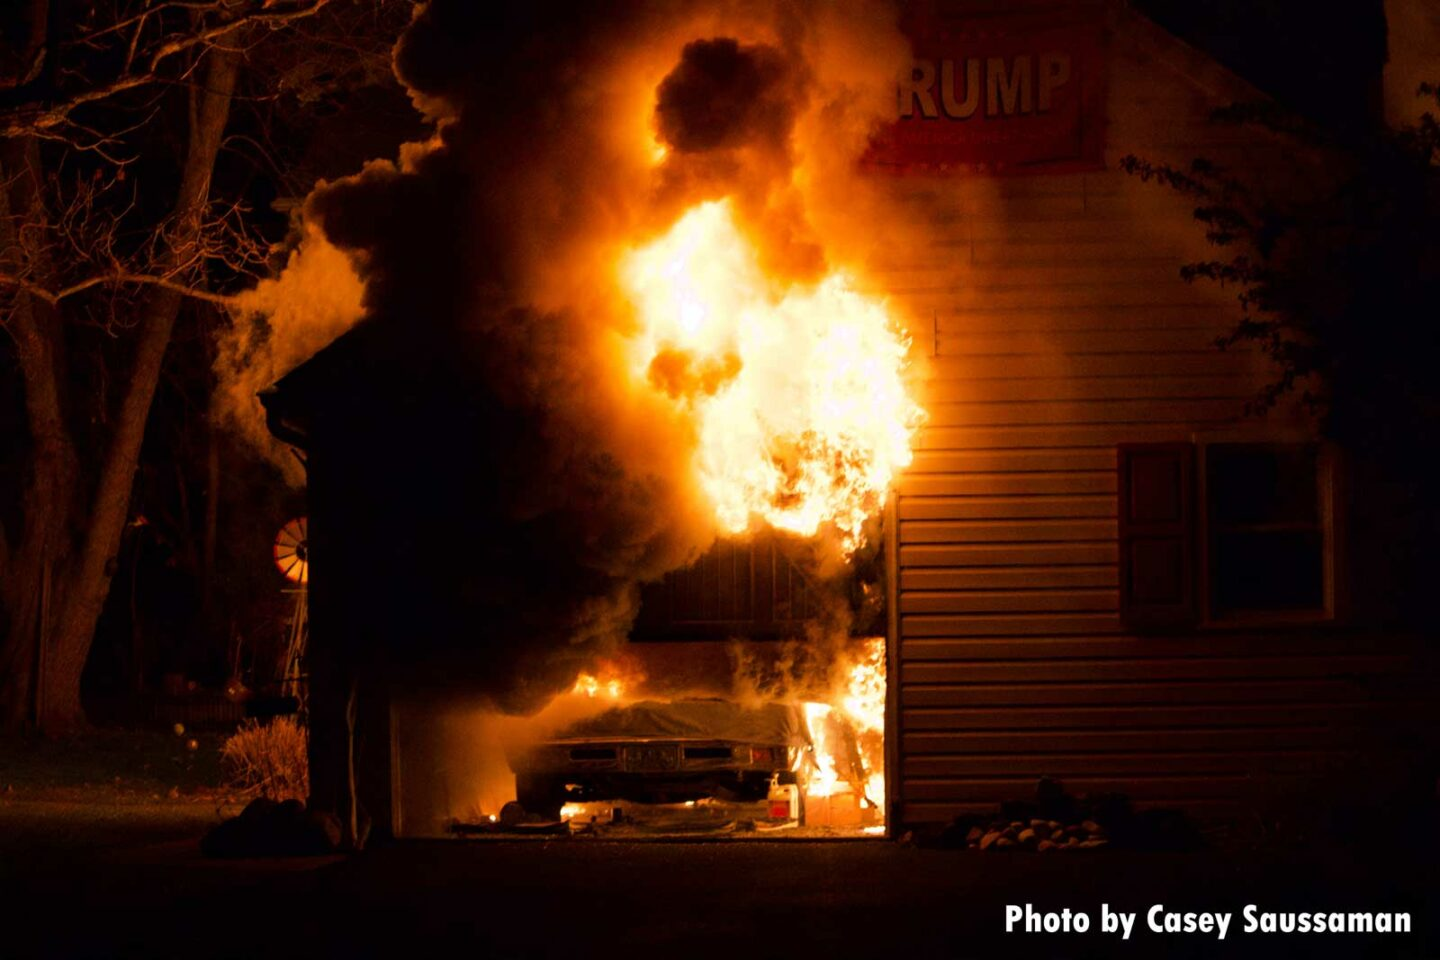 Photos show flames tearing through the garage and a vehicle